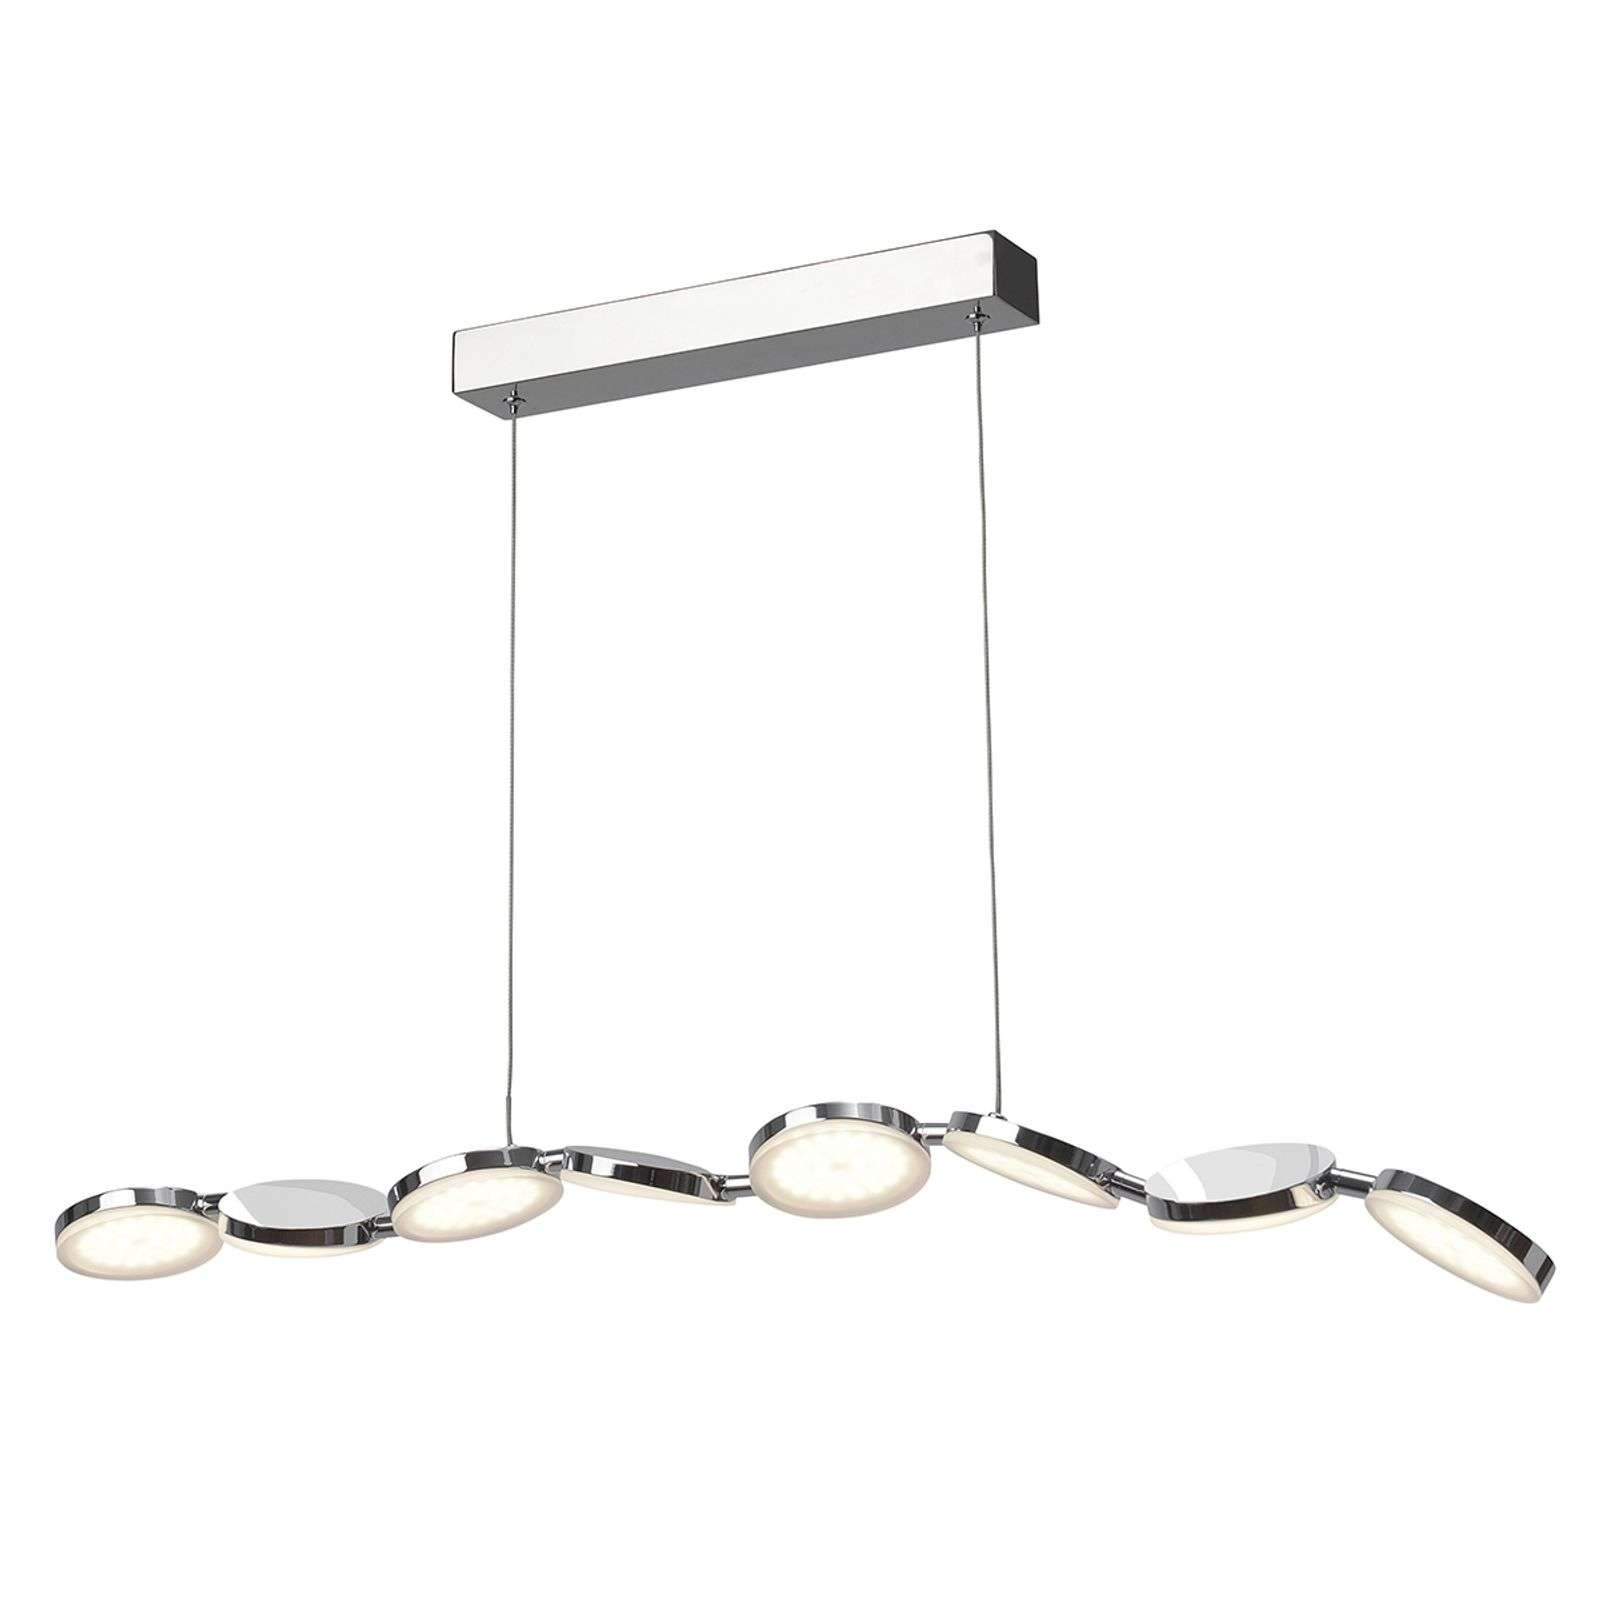 Suspension LED longue et flexible Konge